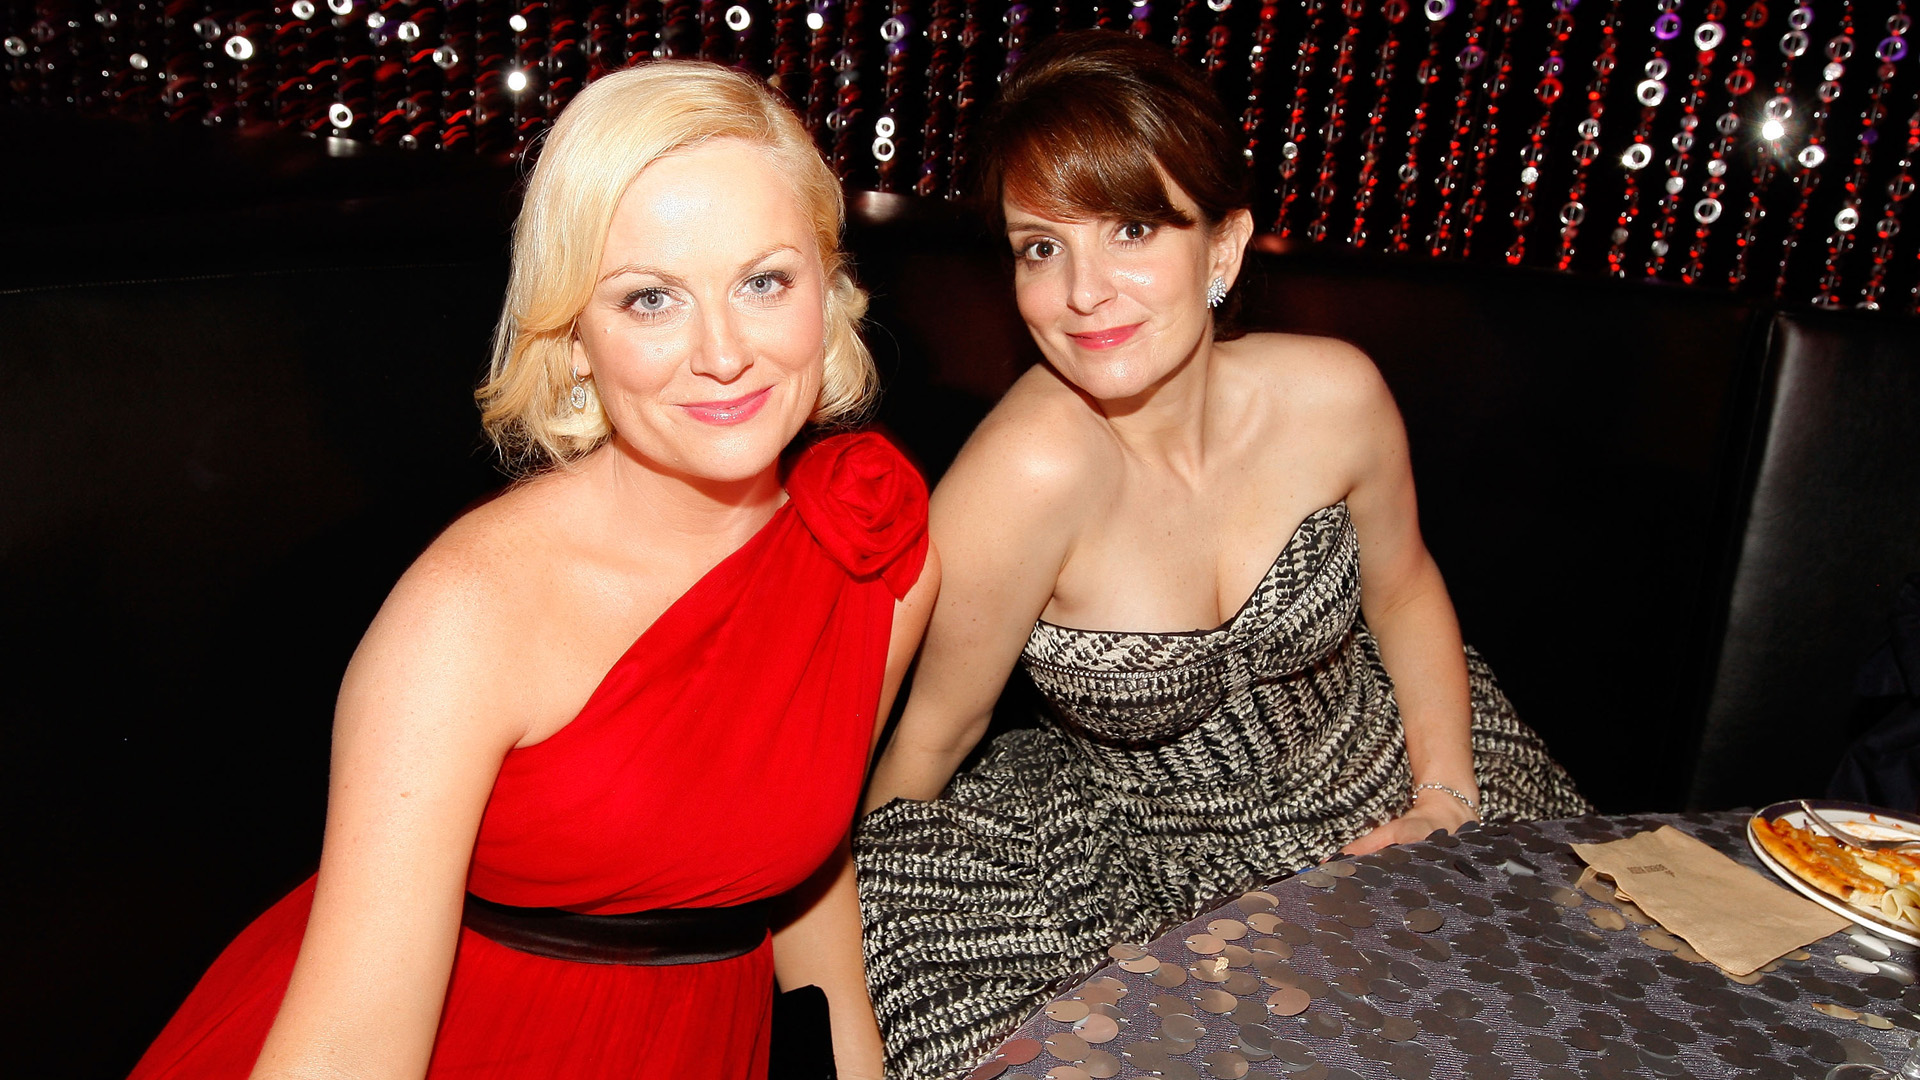 Tina Fey and Amy Poehler's Comedy to Face Off Against 'Star Wars' in 2015